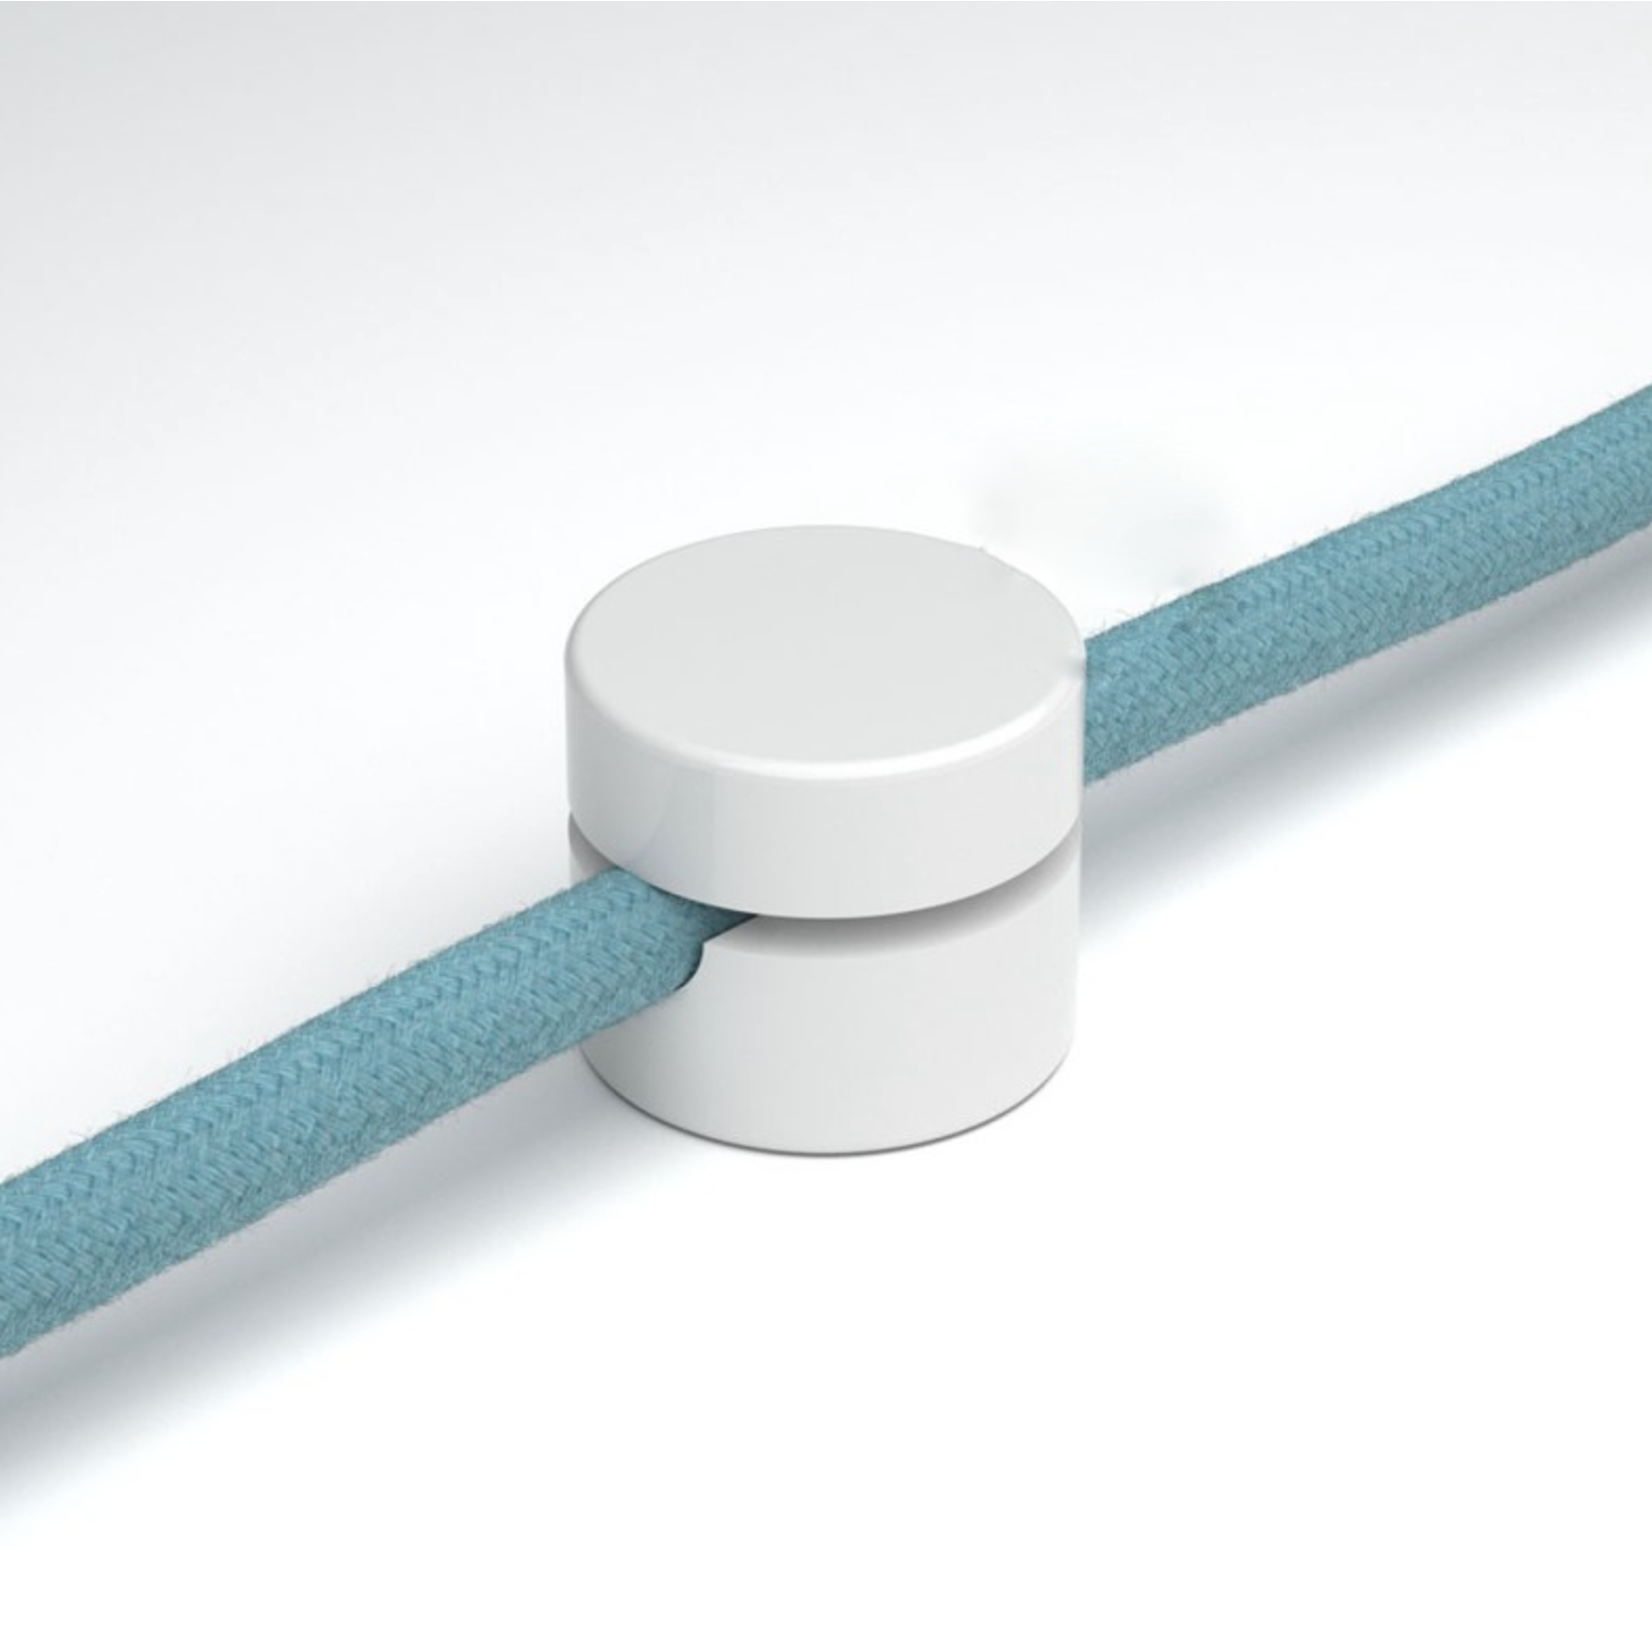 CCIT Cable Director - Wall Staple Universal fairlead for fabric cables, Made of white Plastic